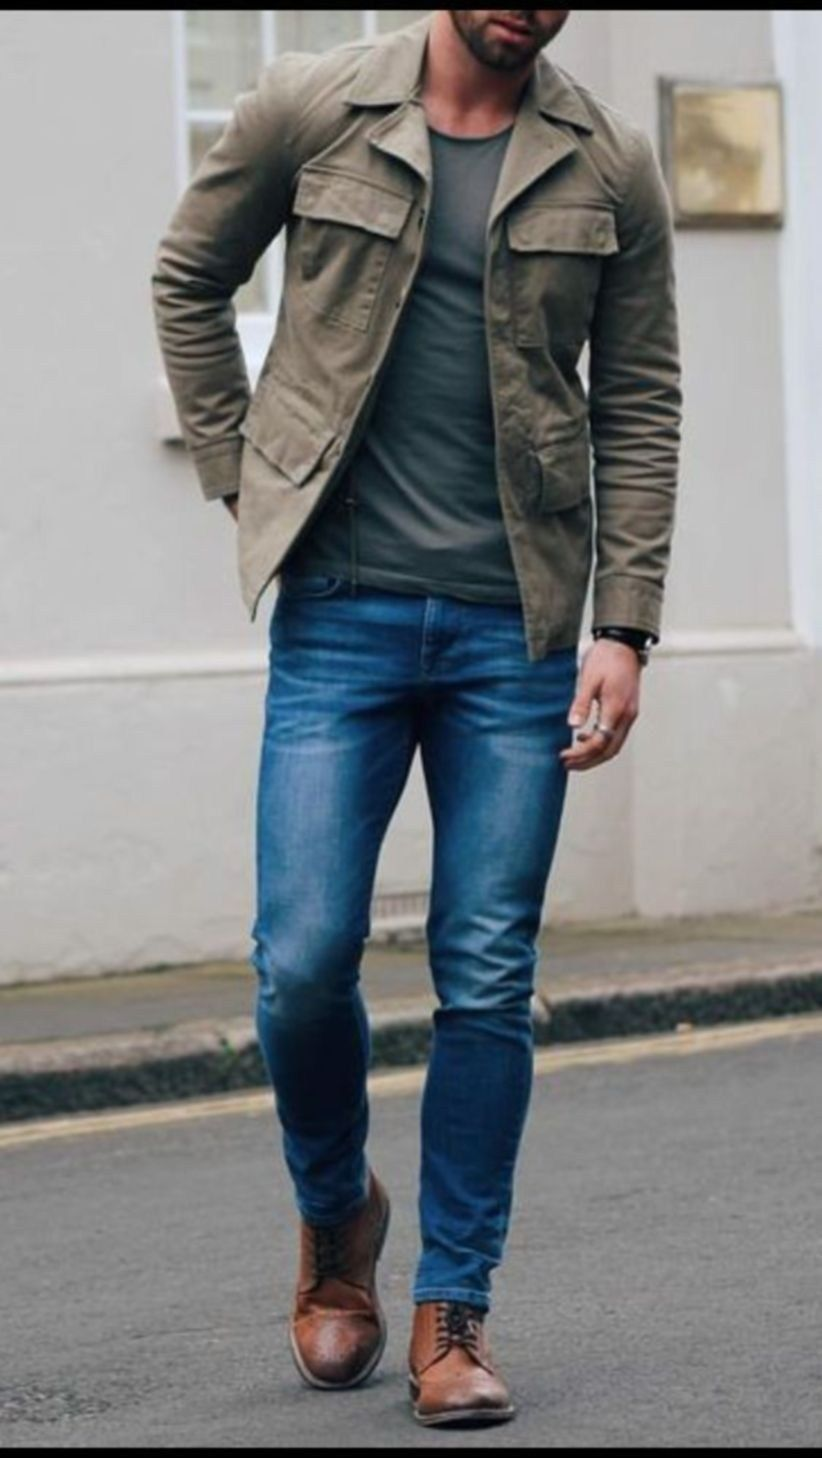 48 Most Popular Mens Casual Outfits Ideas - VIs-Wed #mensfashion